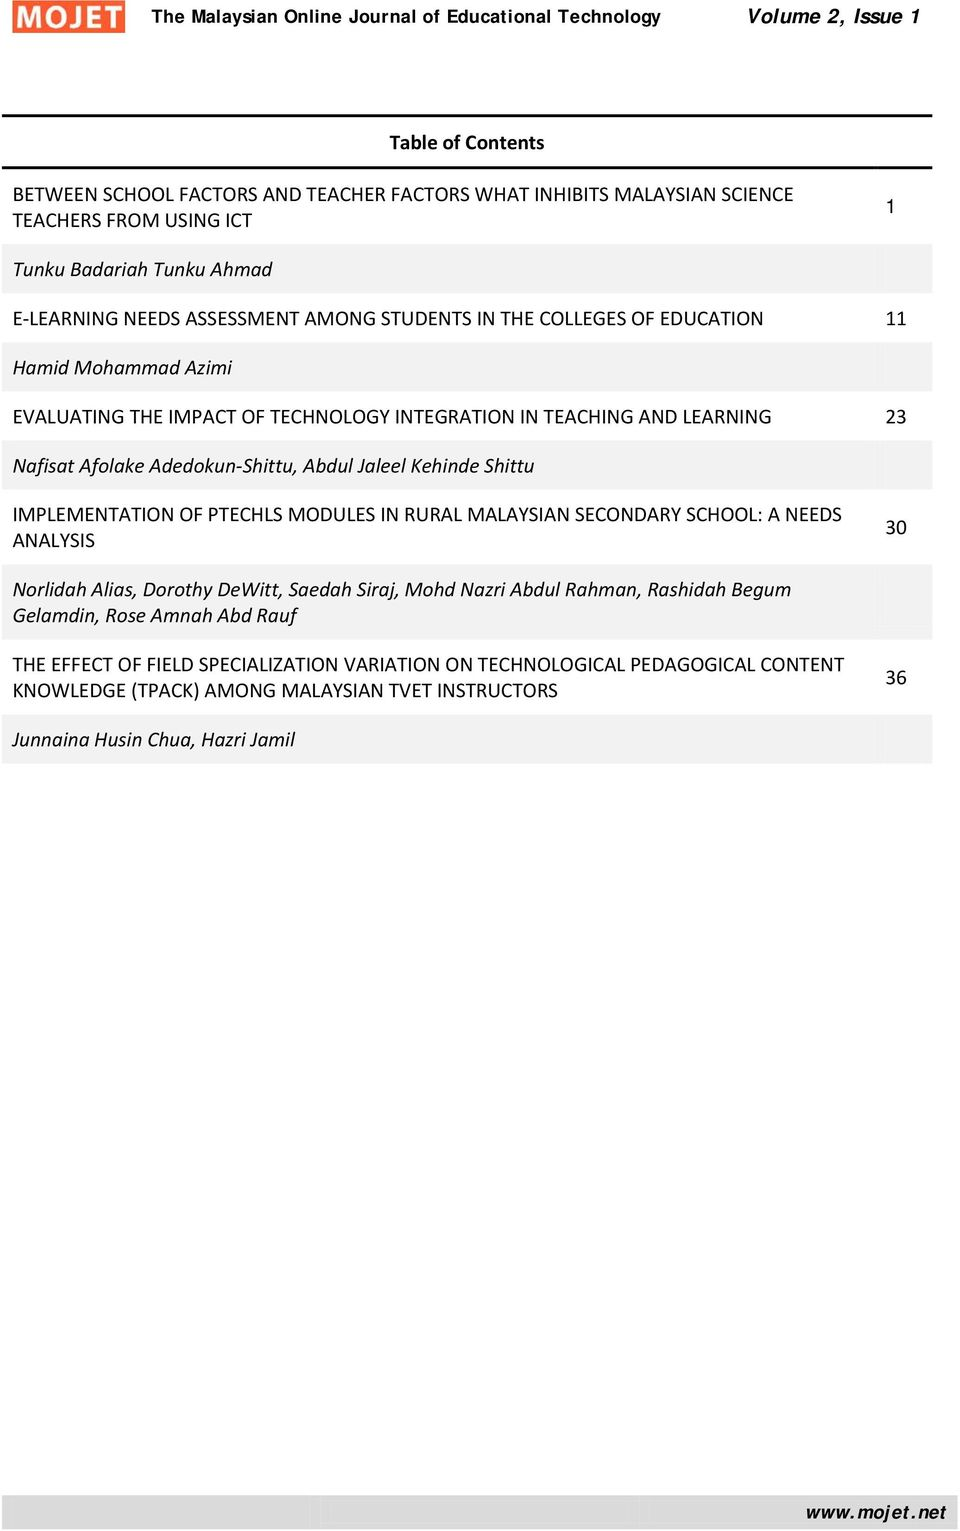 Shittu IMPLEMENTATION OF PTECHLS MODULES IN RURAL MALAYSIAN SECONDARY SCHOOL: A NEEDS ANALYSIS 30 Norlidah Alias, Dorothy DeWitt, Saedah Siraj, Mohd Nazri Abdul Rahman, Rashidah Begum